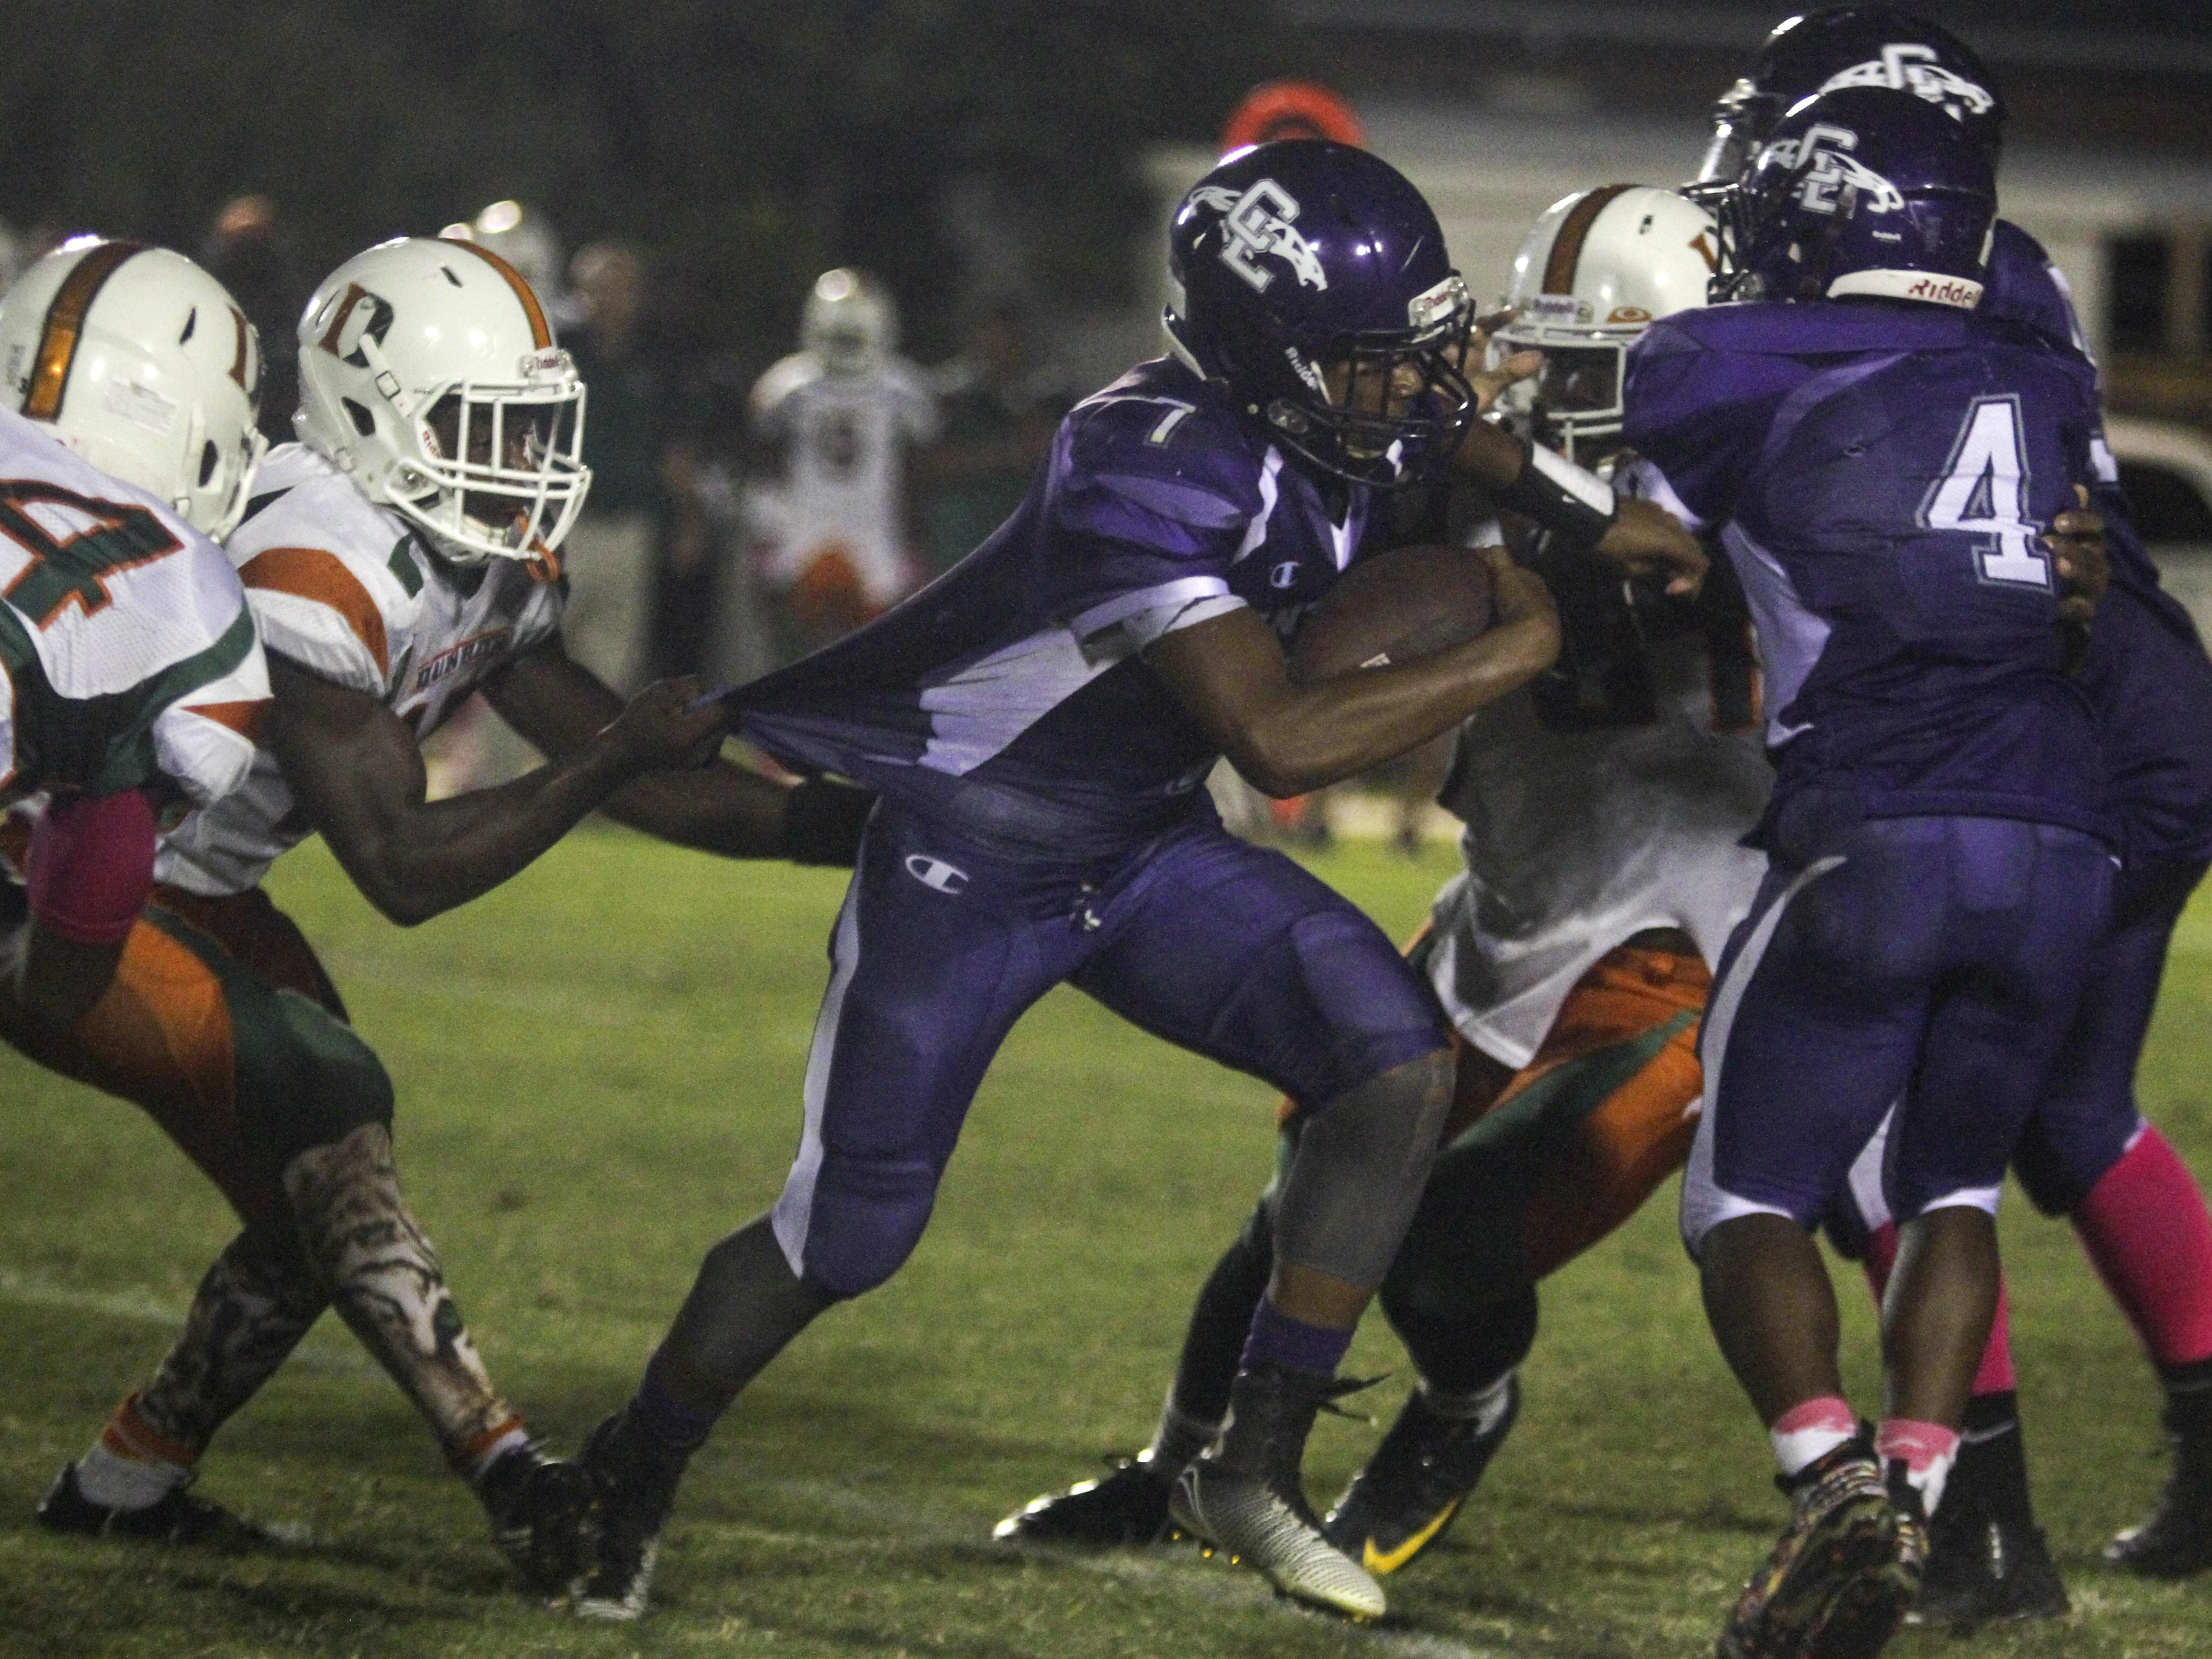 Cypress Lake's Trent Rogers is caught by Dunbar's Lavaris Preston as he runs the ball on Friday, October 16, 2015, in at Cypress Lake High School.